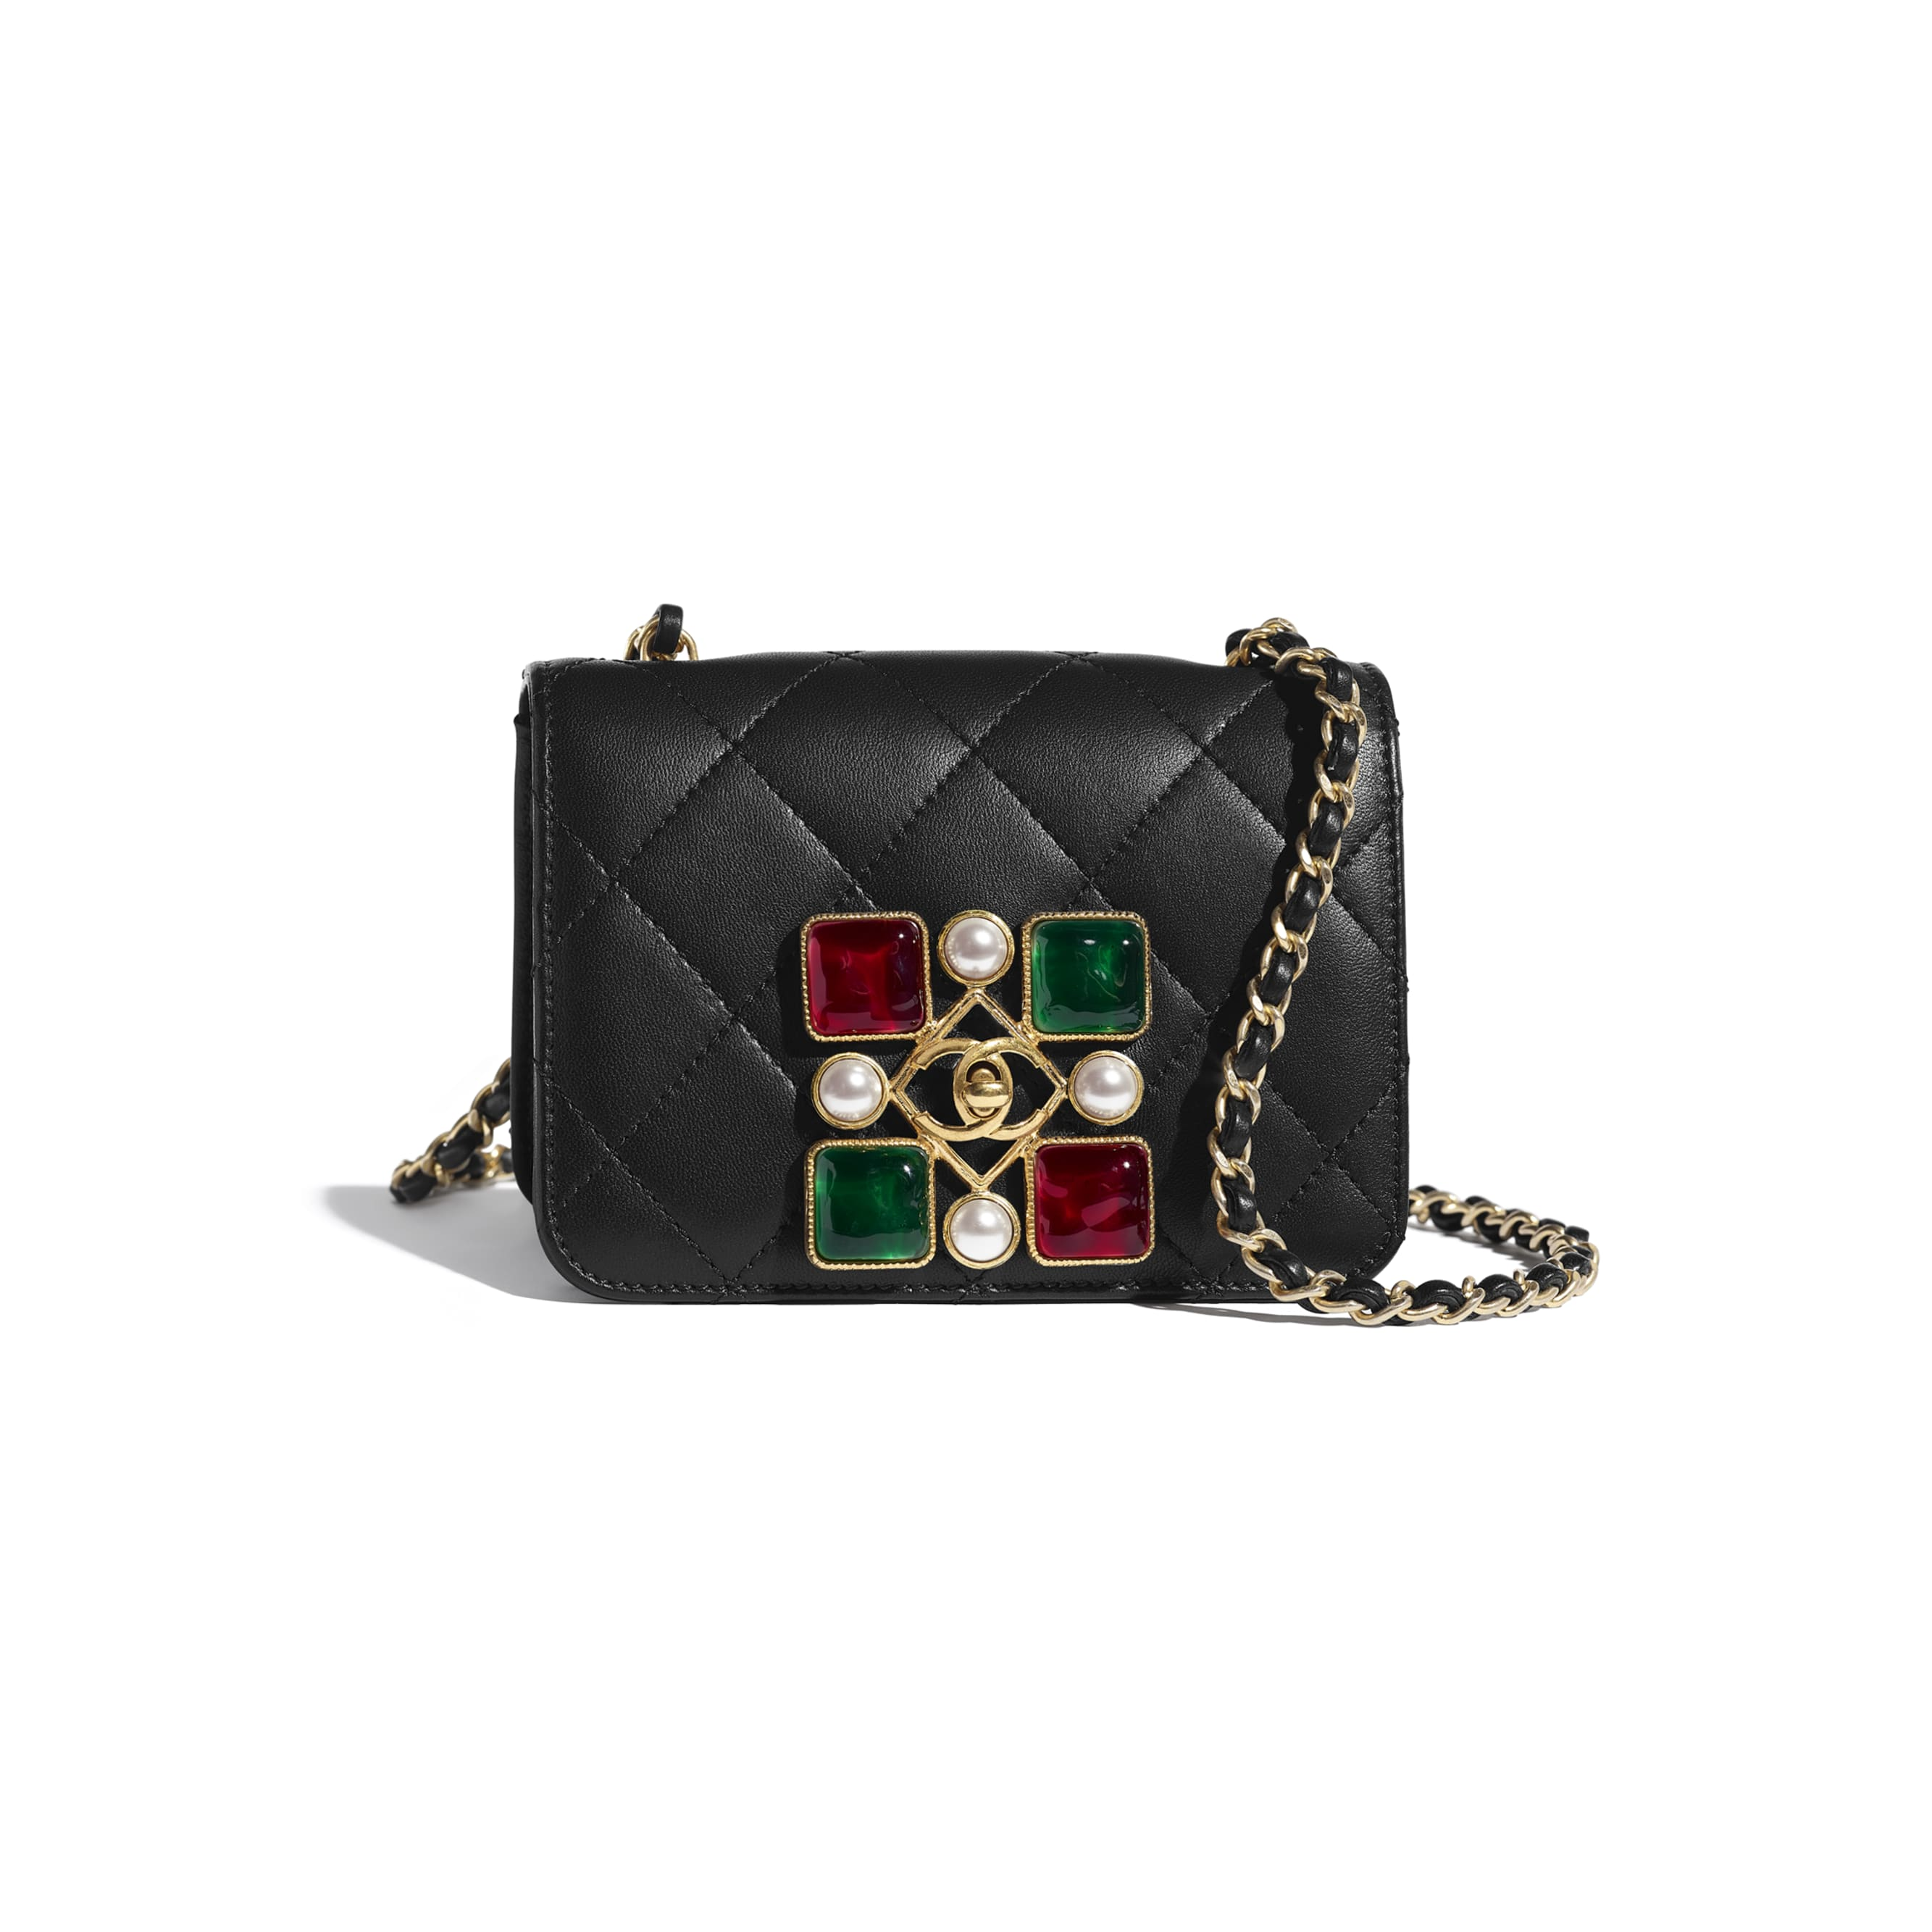 Small Flap Bag - Black - Calfskin, Crystal Pearls, Resin & Gold-Tone Metal - CHANEL - Default view - see standard sized version